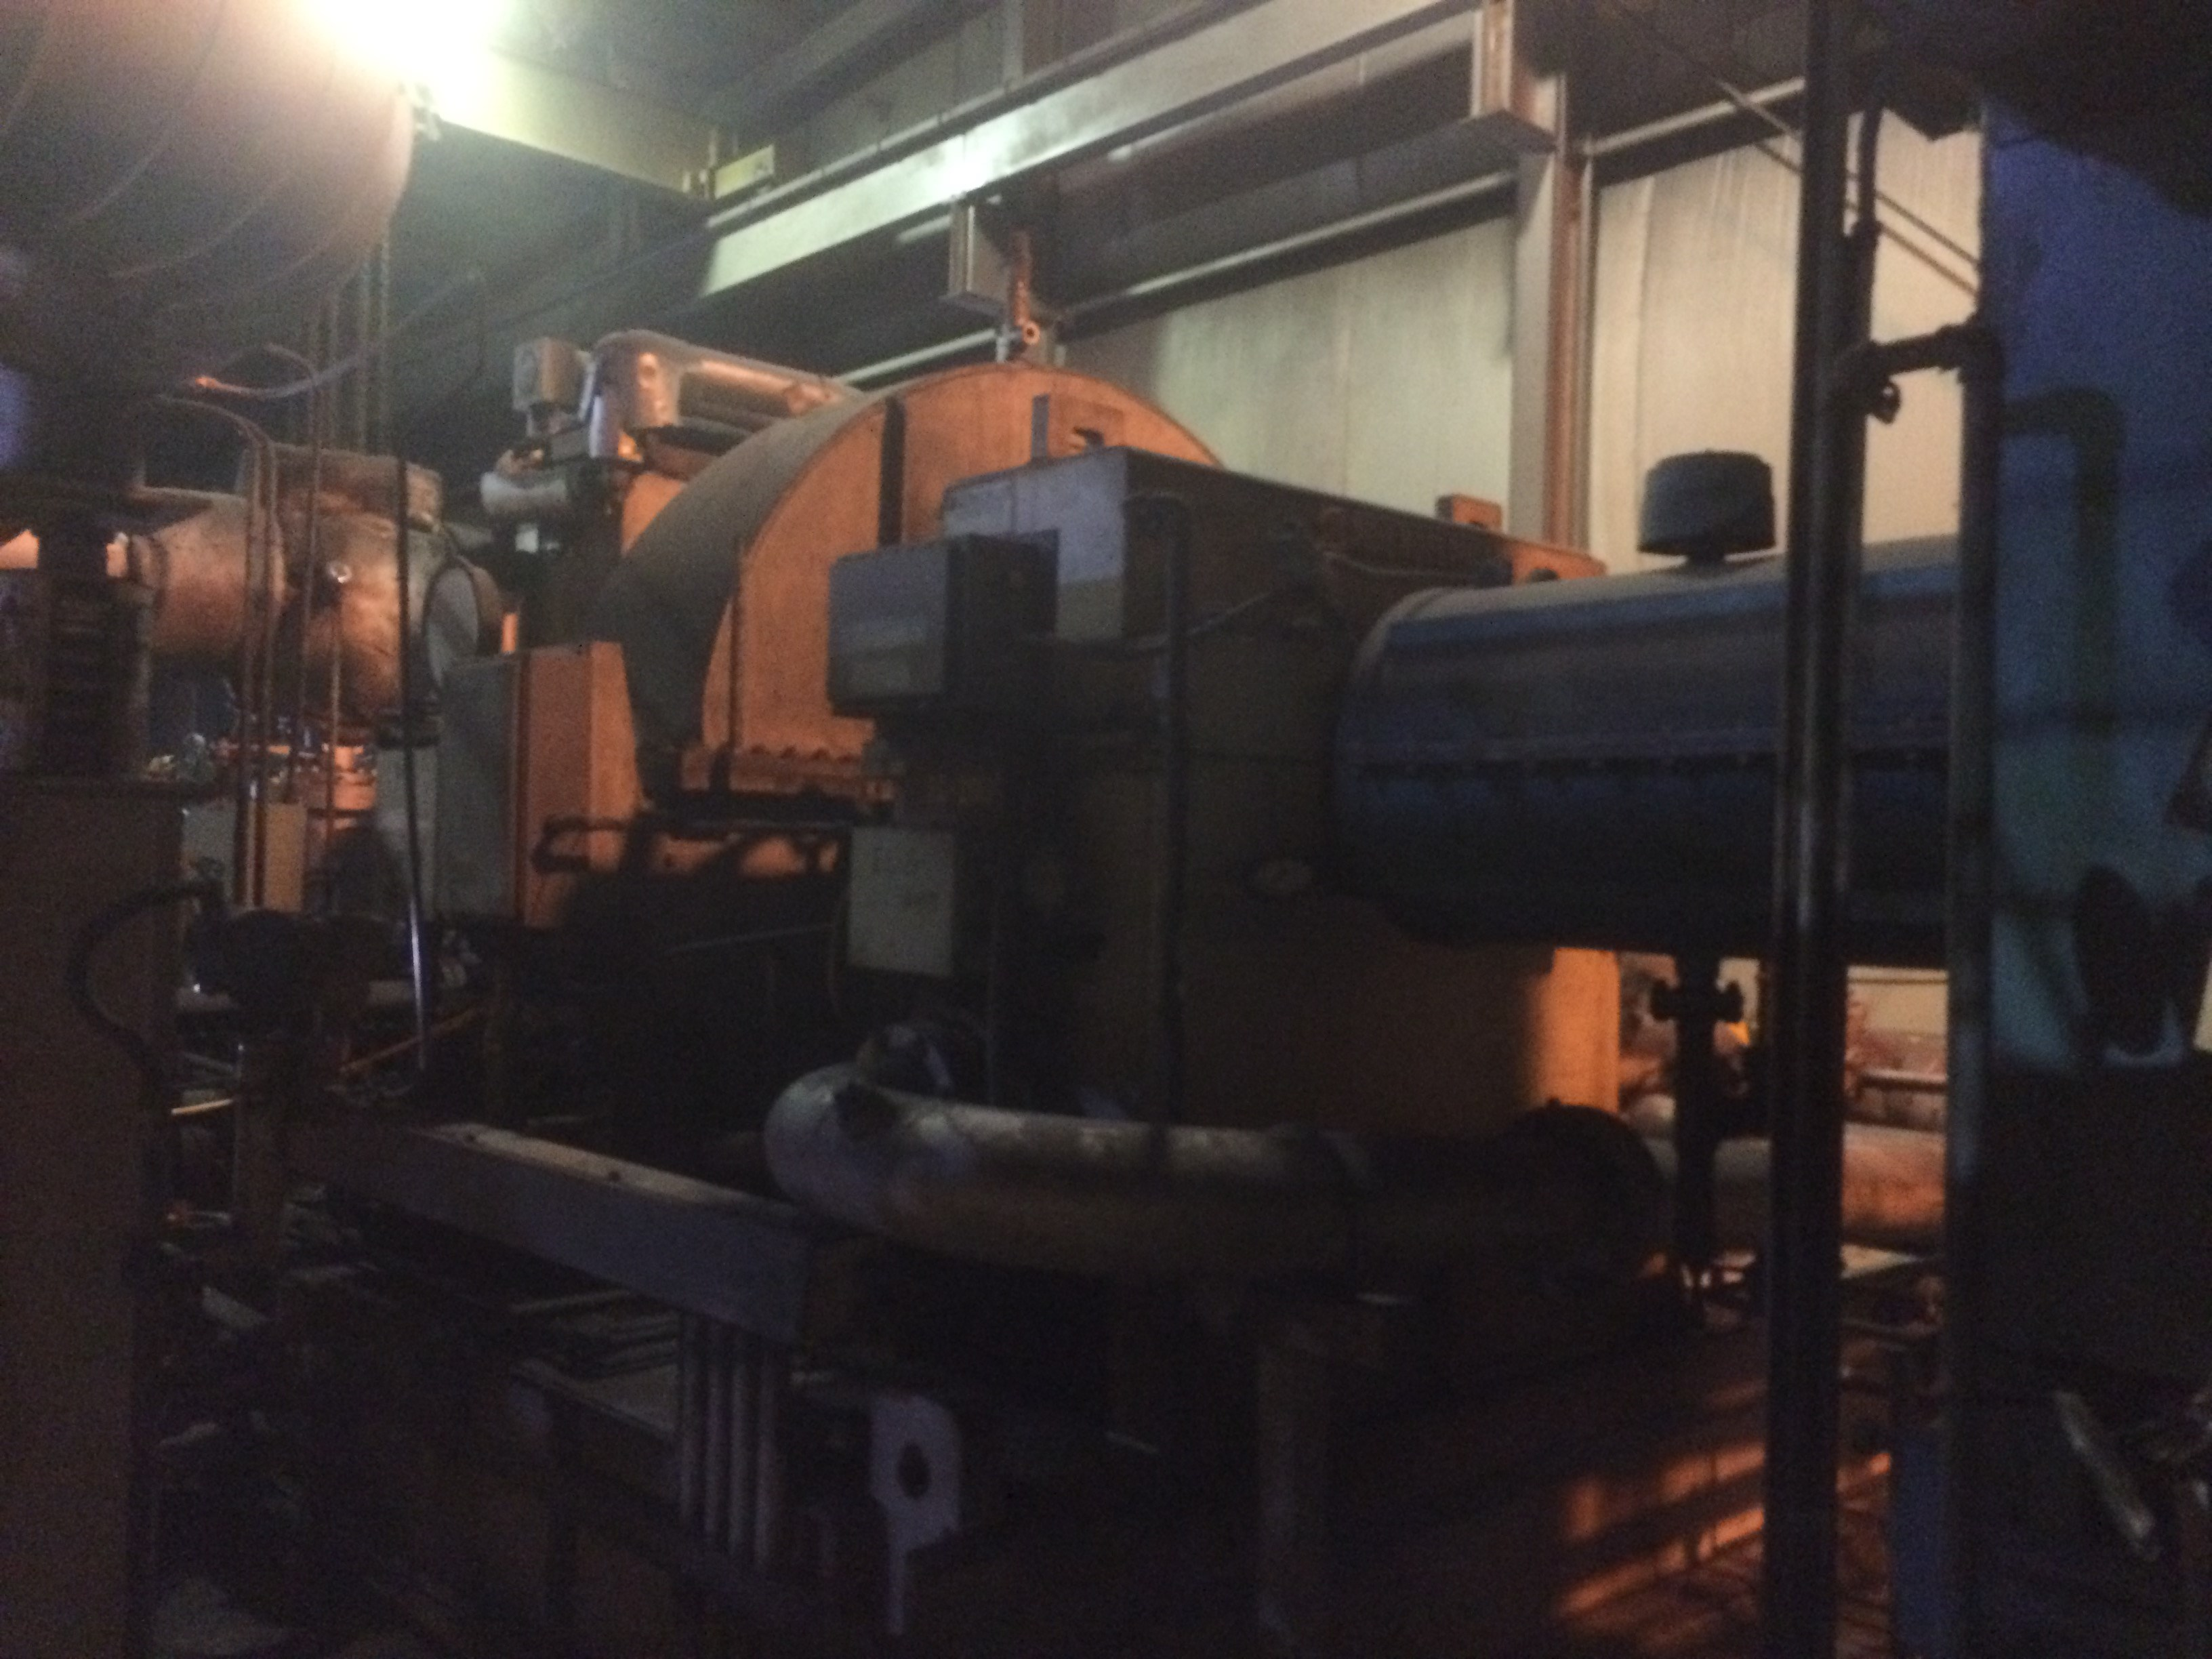 Used De Laval Steam Turbine Generator 11 MW for Sale at Phoenix